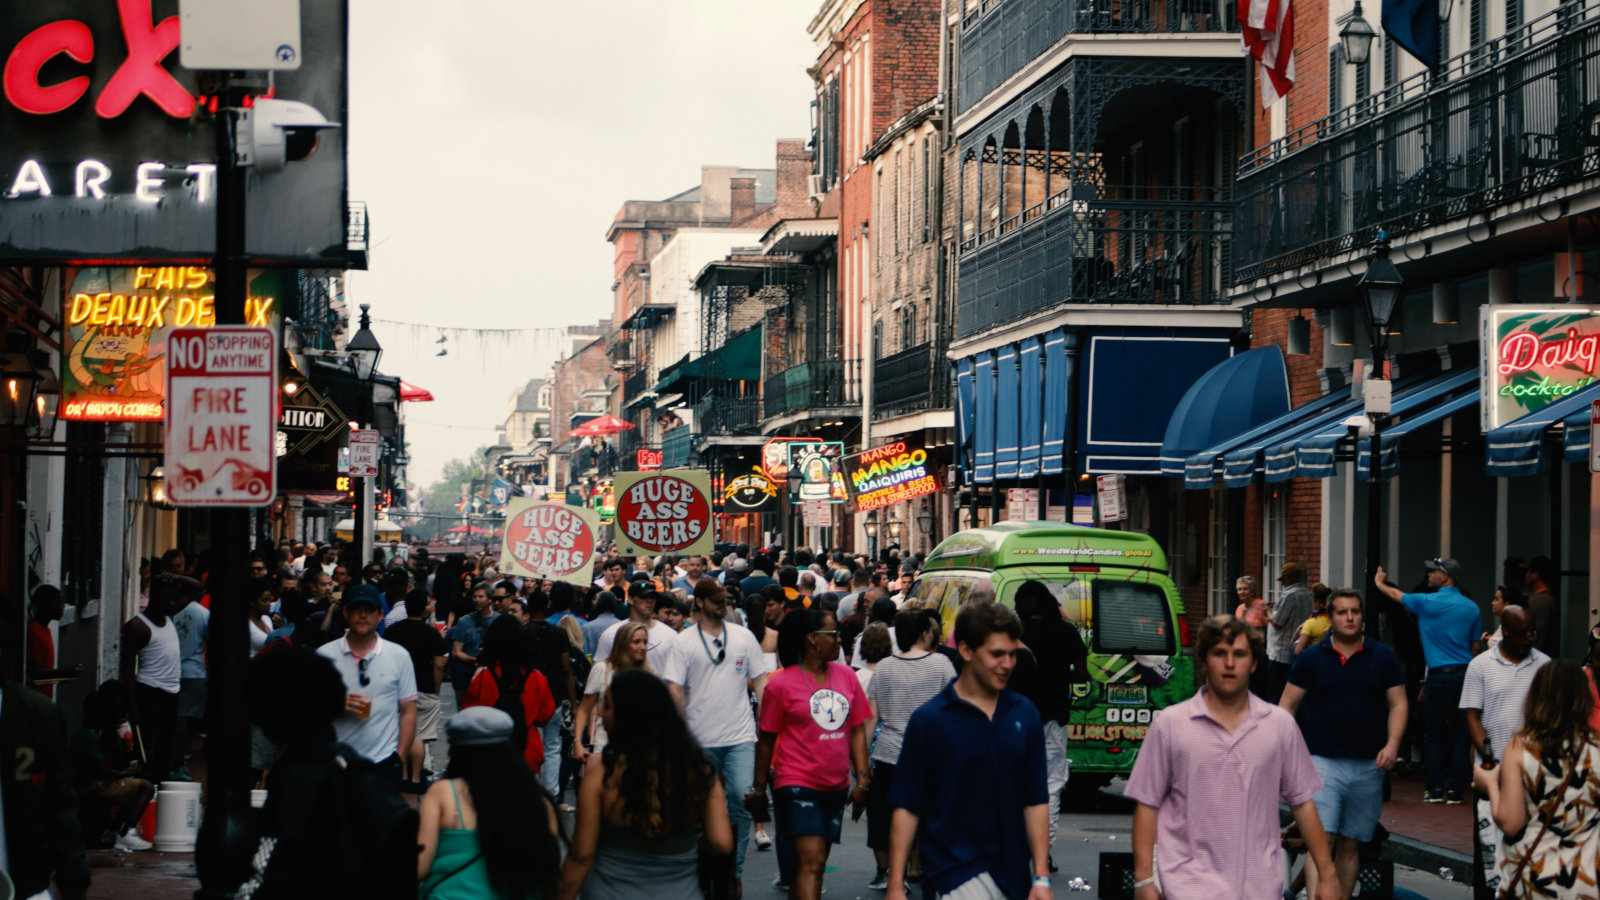 New Orleans is filled with gay culture and one of the best gay vacation spots in the world